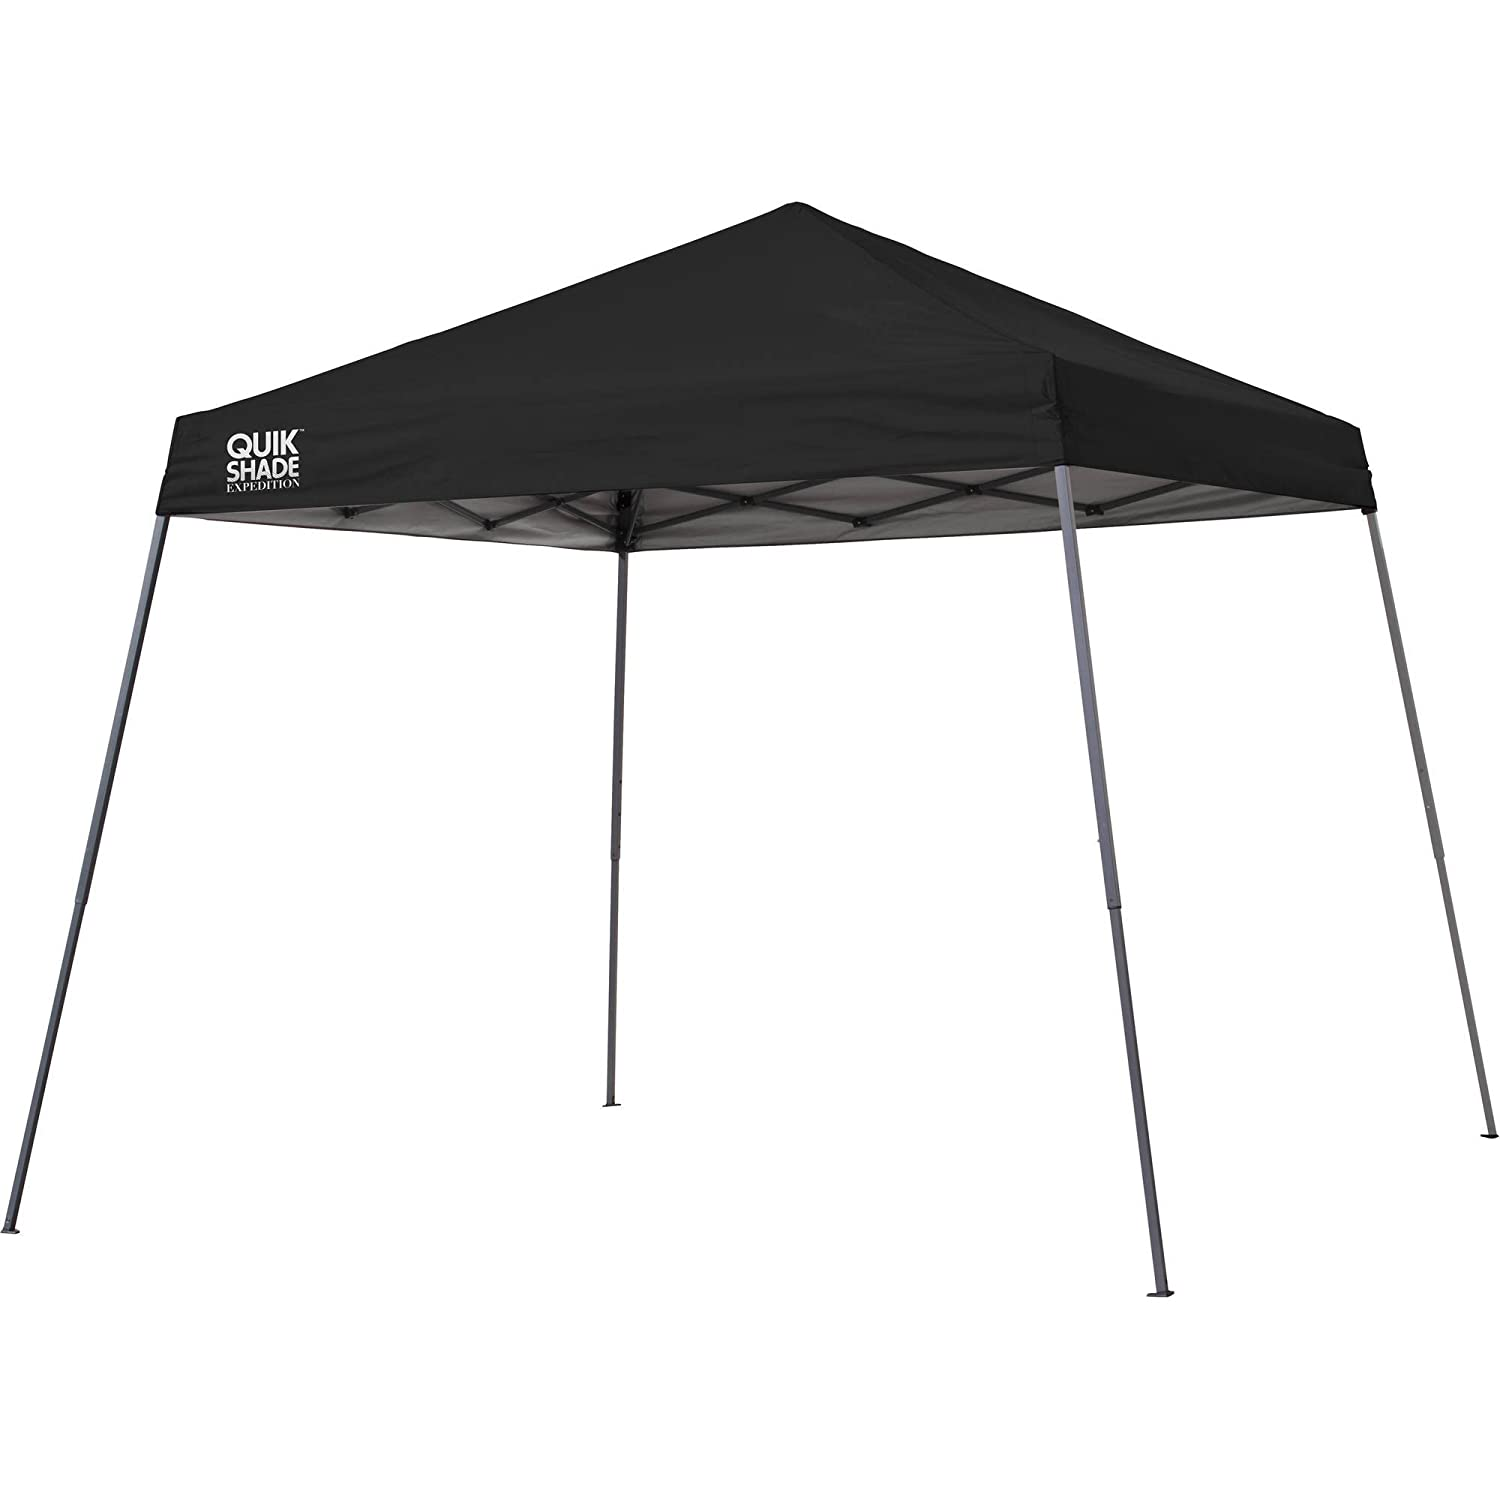 Amazon.com  Quik Shade Expedition Instant Canopy Black  Sports u0026 Outdoors  sc 1 st  Amazon.com & Amazon.com : Quik Shade Expedition Instant Canopy Black : Sports ...